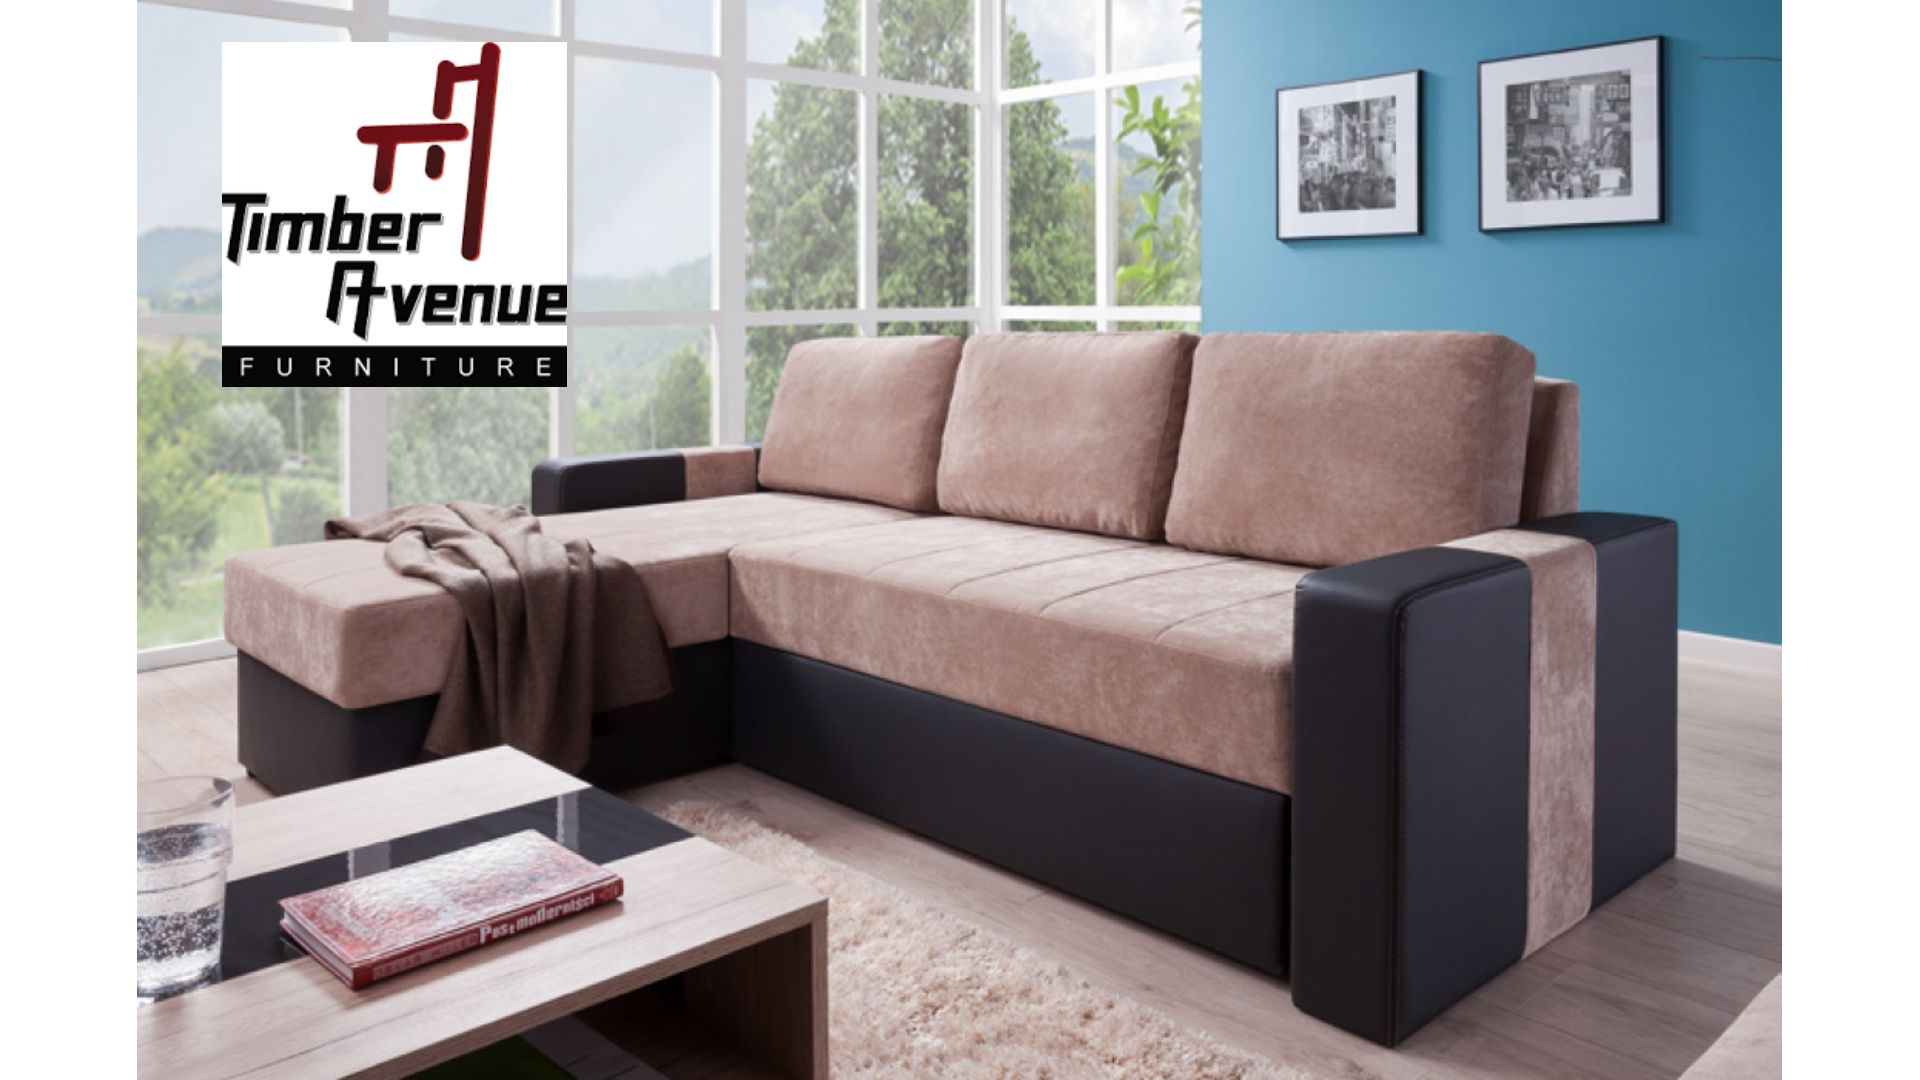 Looking For Best Office Furniture Chennai Showrooms Visit Timberavenue Com And Find The Best Deals For Sofas For Small Spaces Corner Sofa Bed Sofa Bed Bedroom